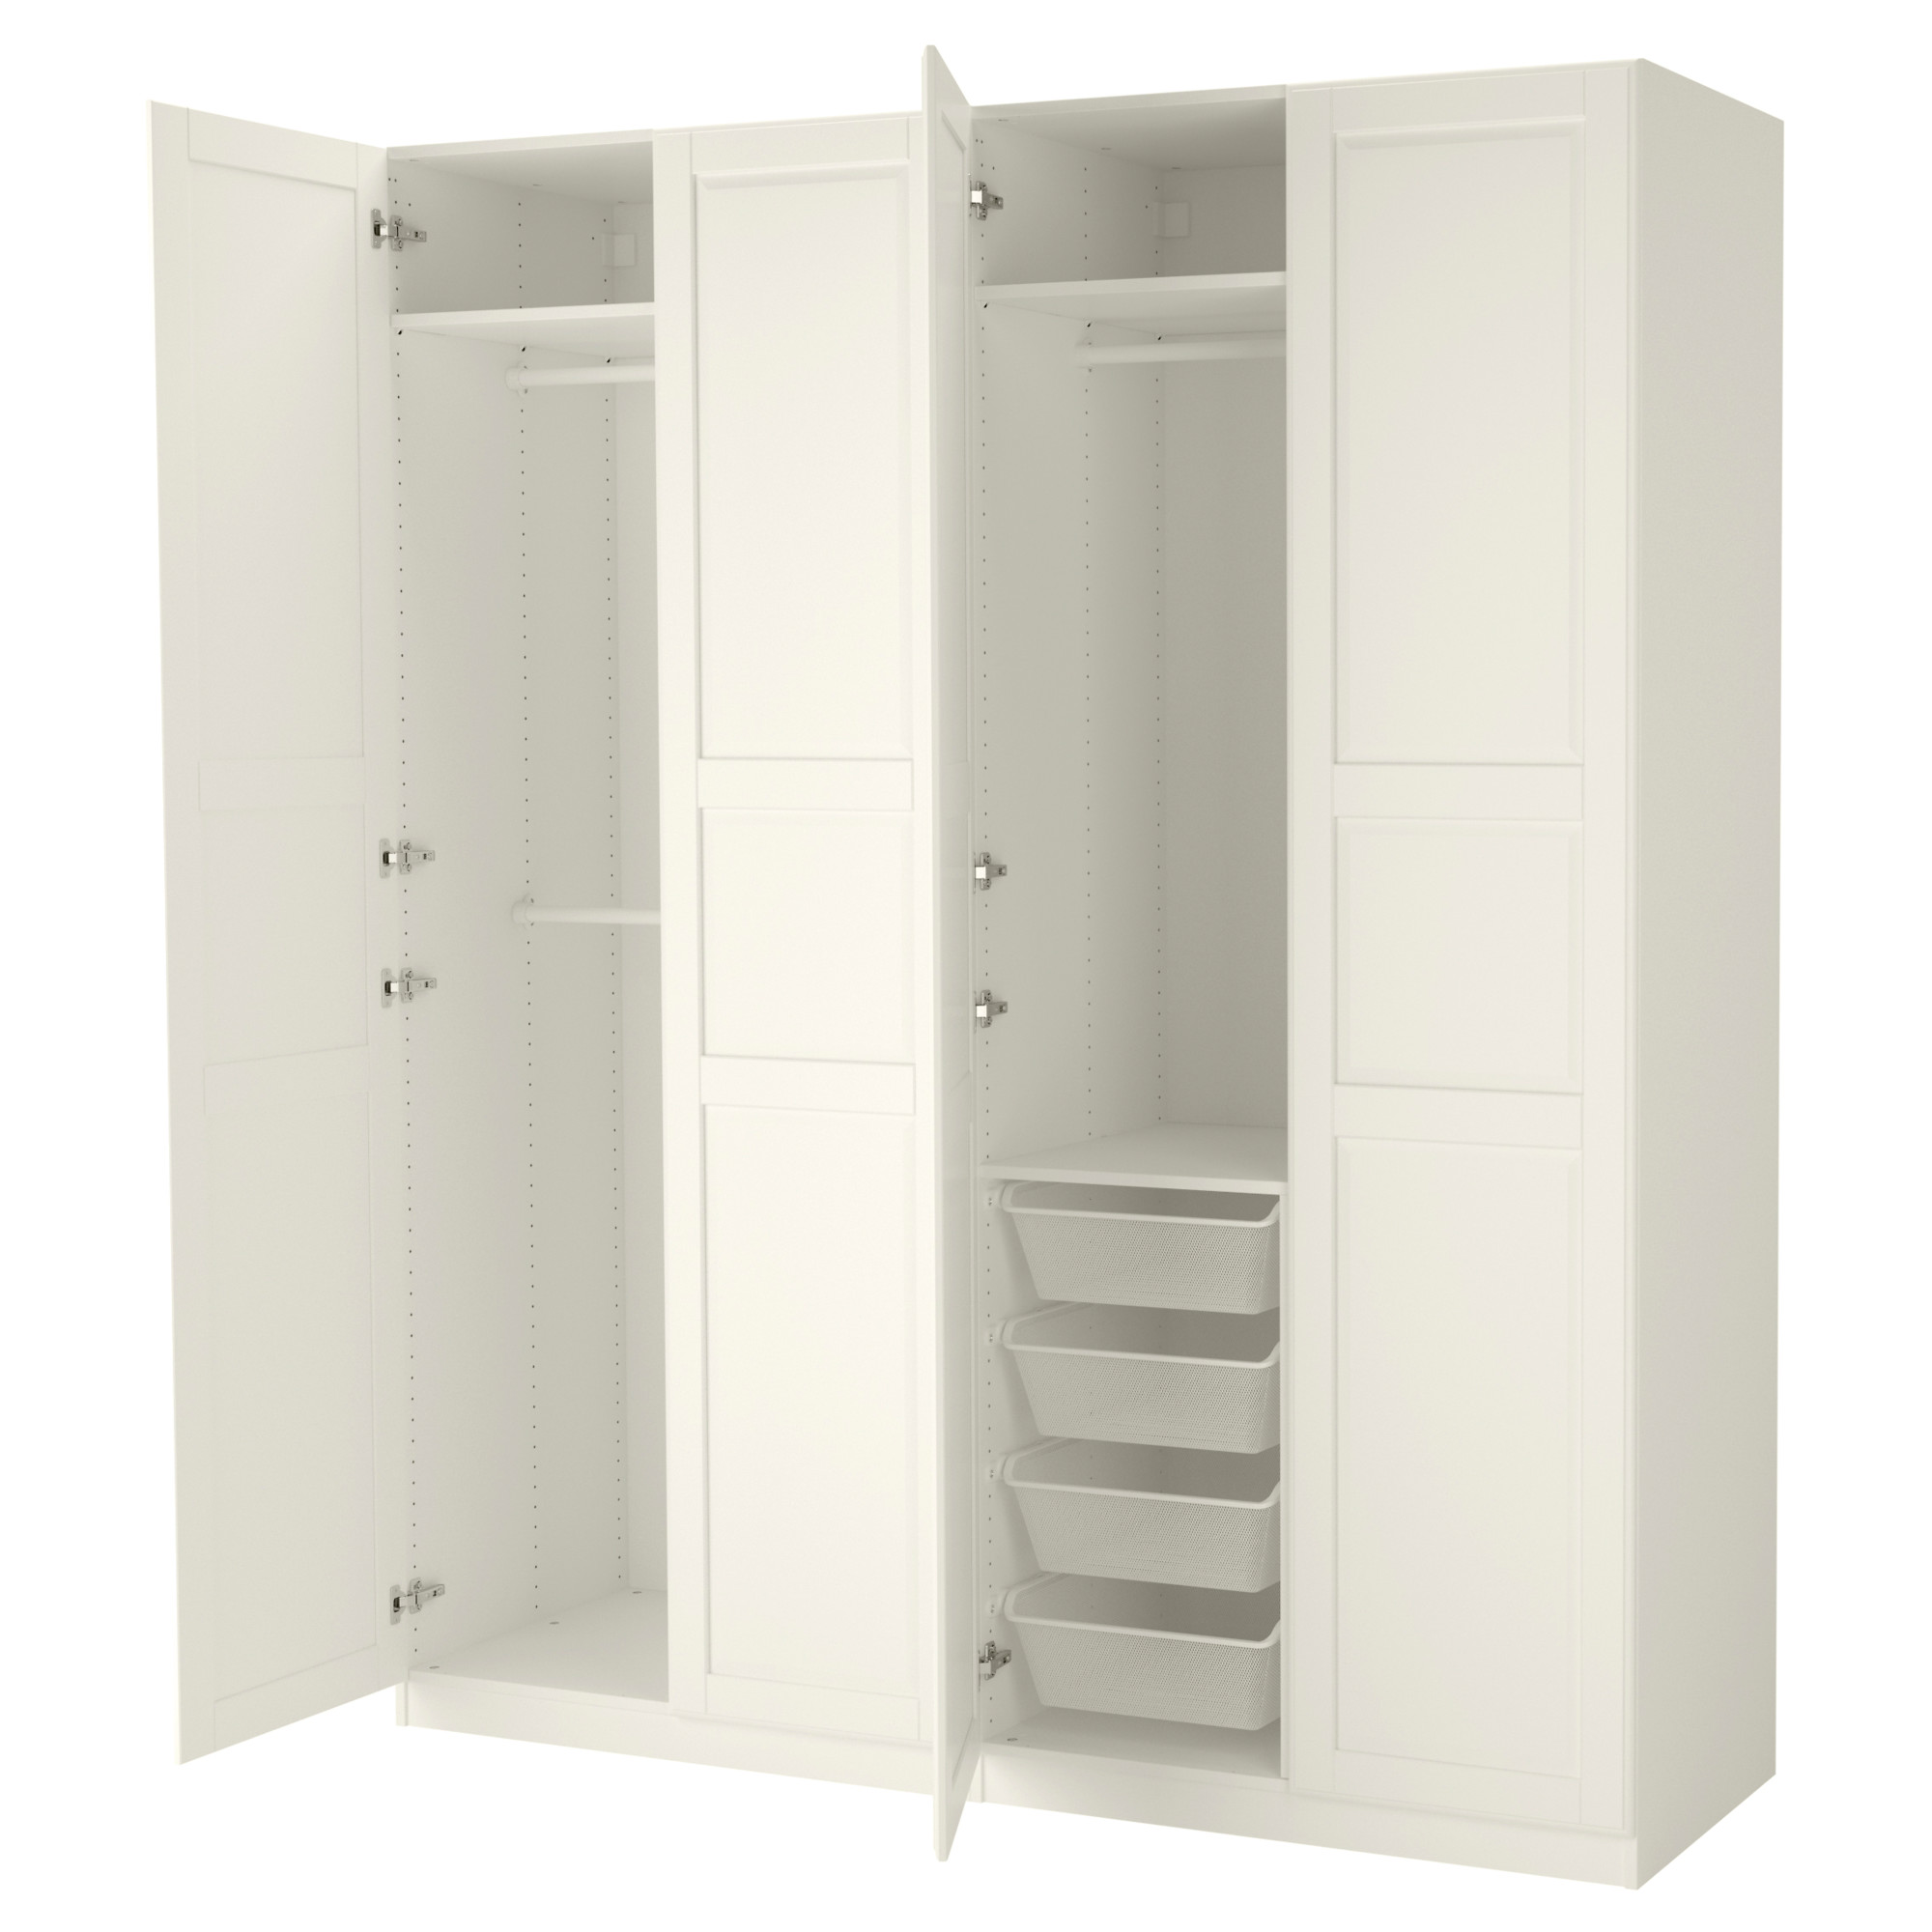 Bedroom Furniture Armoire | Armoire Ikea | Large Armoire For Sale